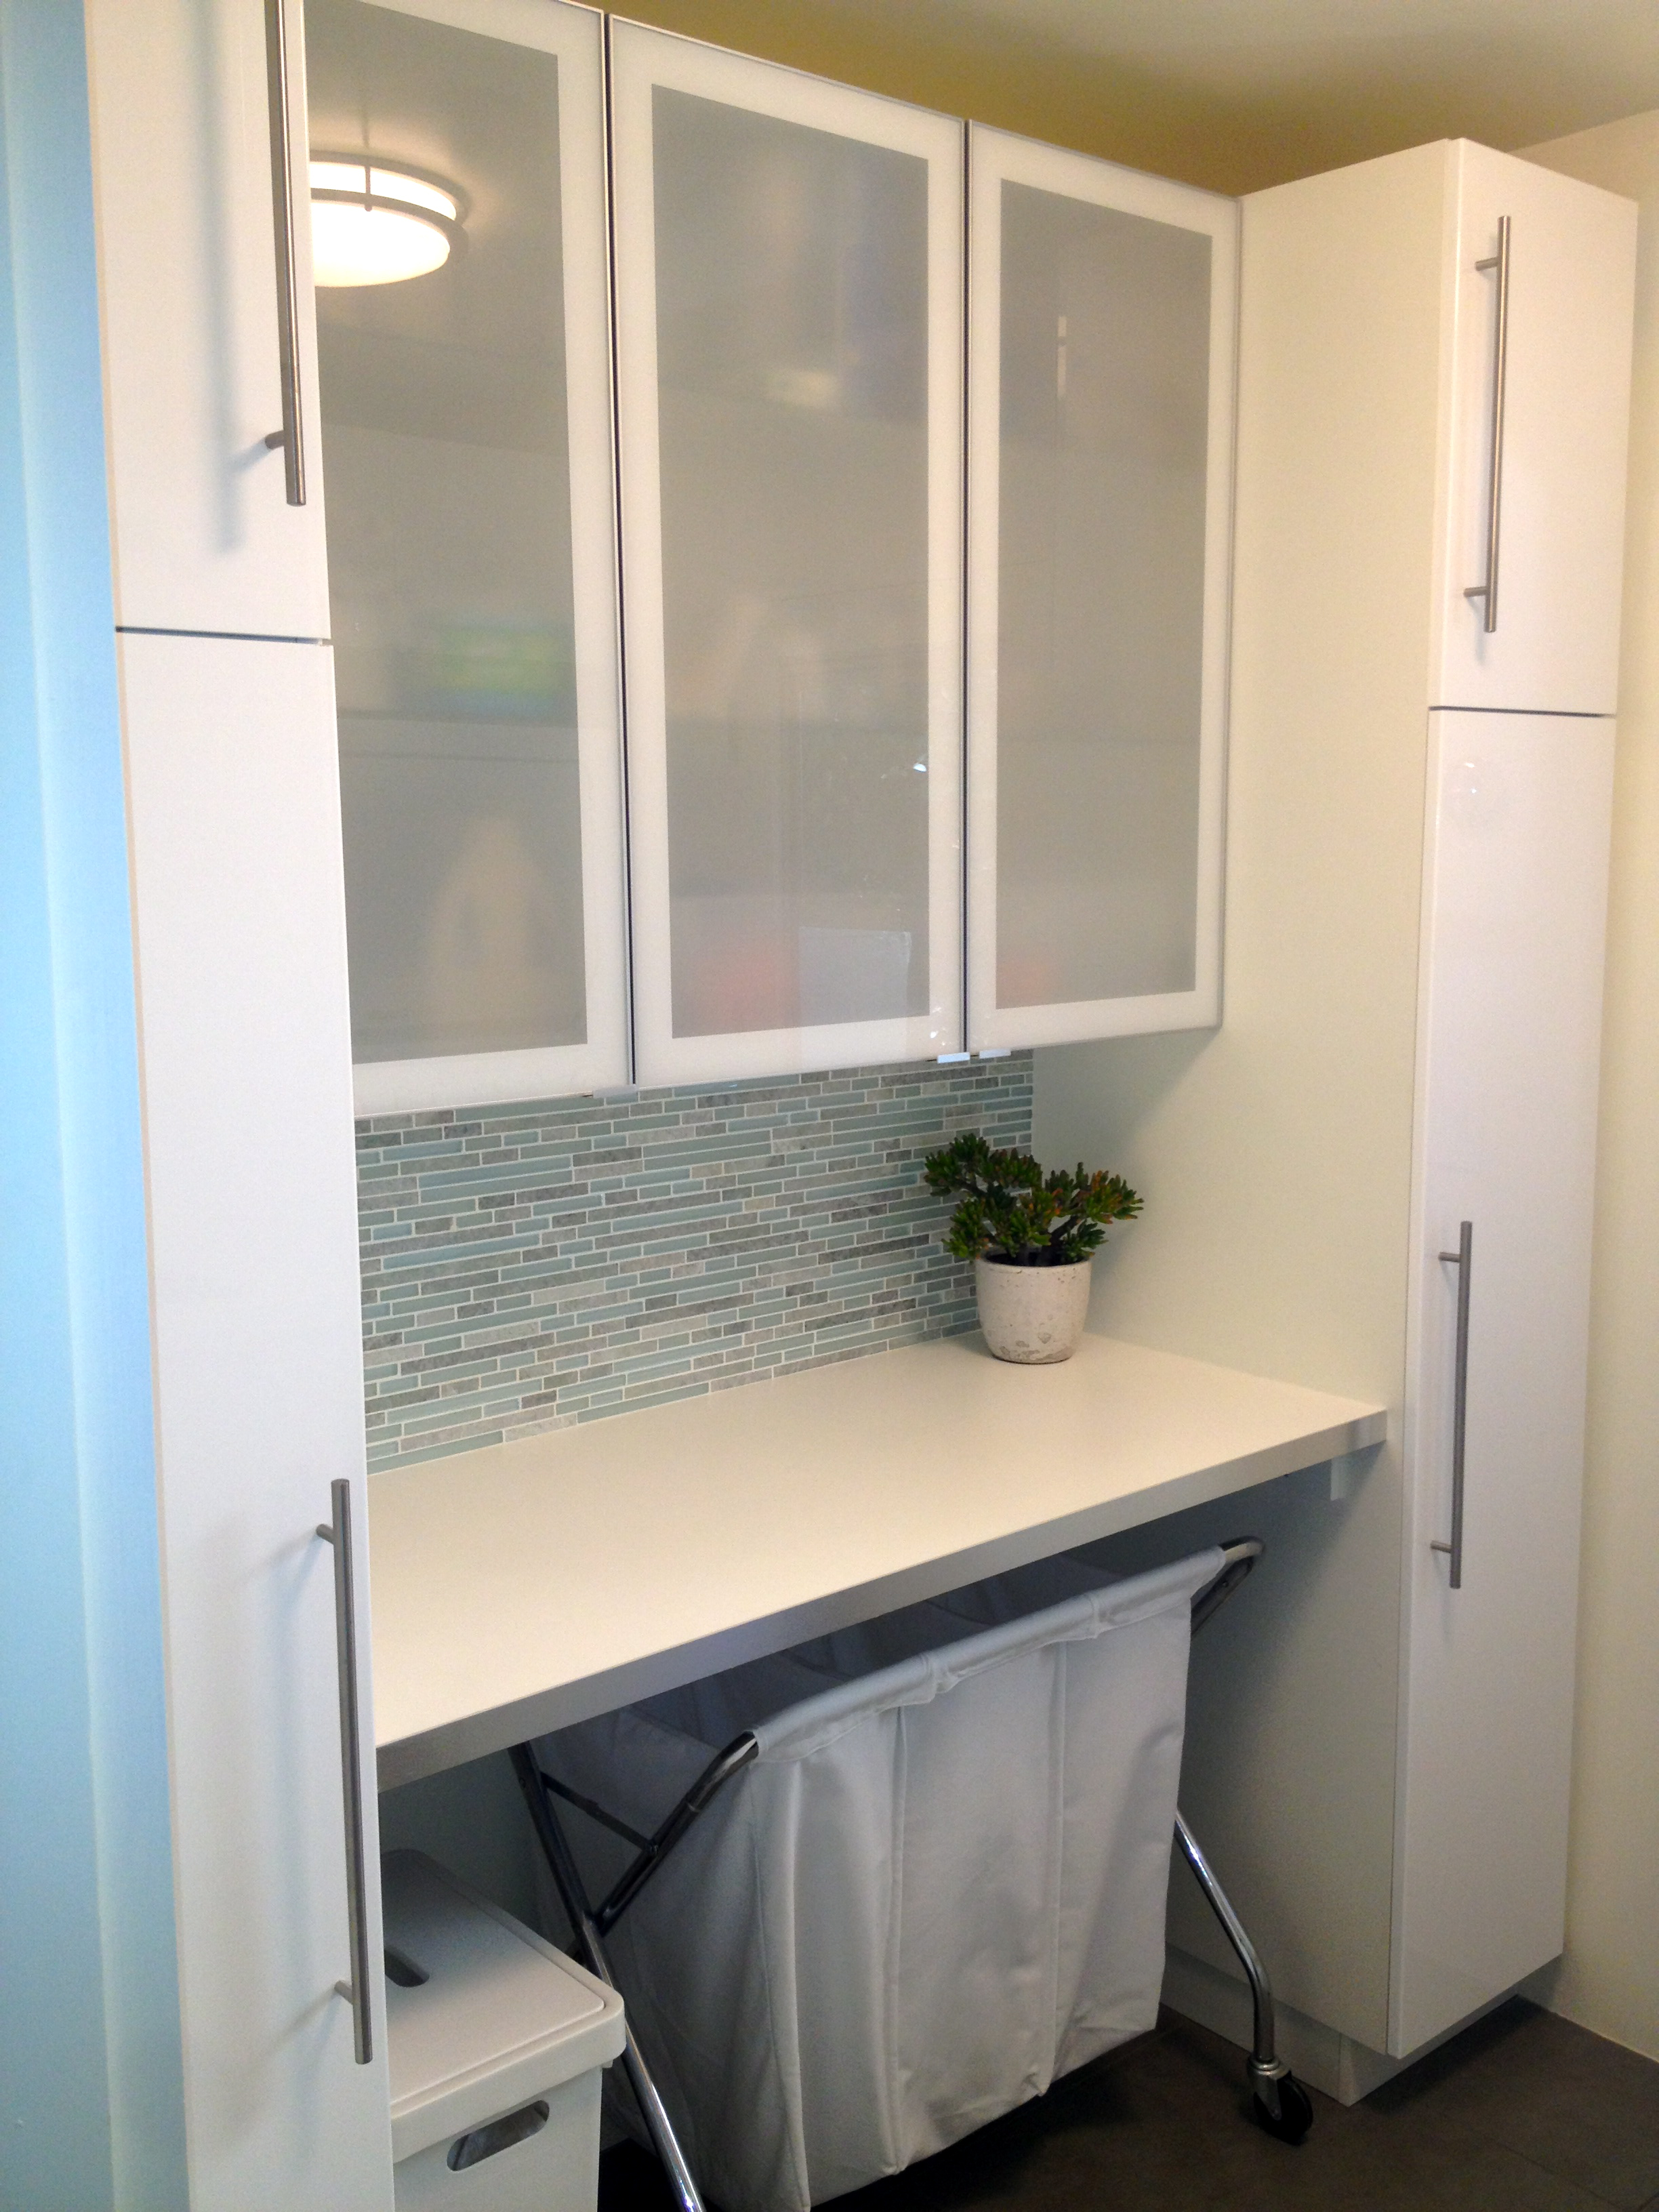 Surprising laundry room cabinets ikea pictures decors dievoon - Fabulous laundry room cabinets ikea ...